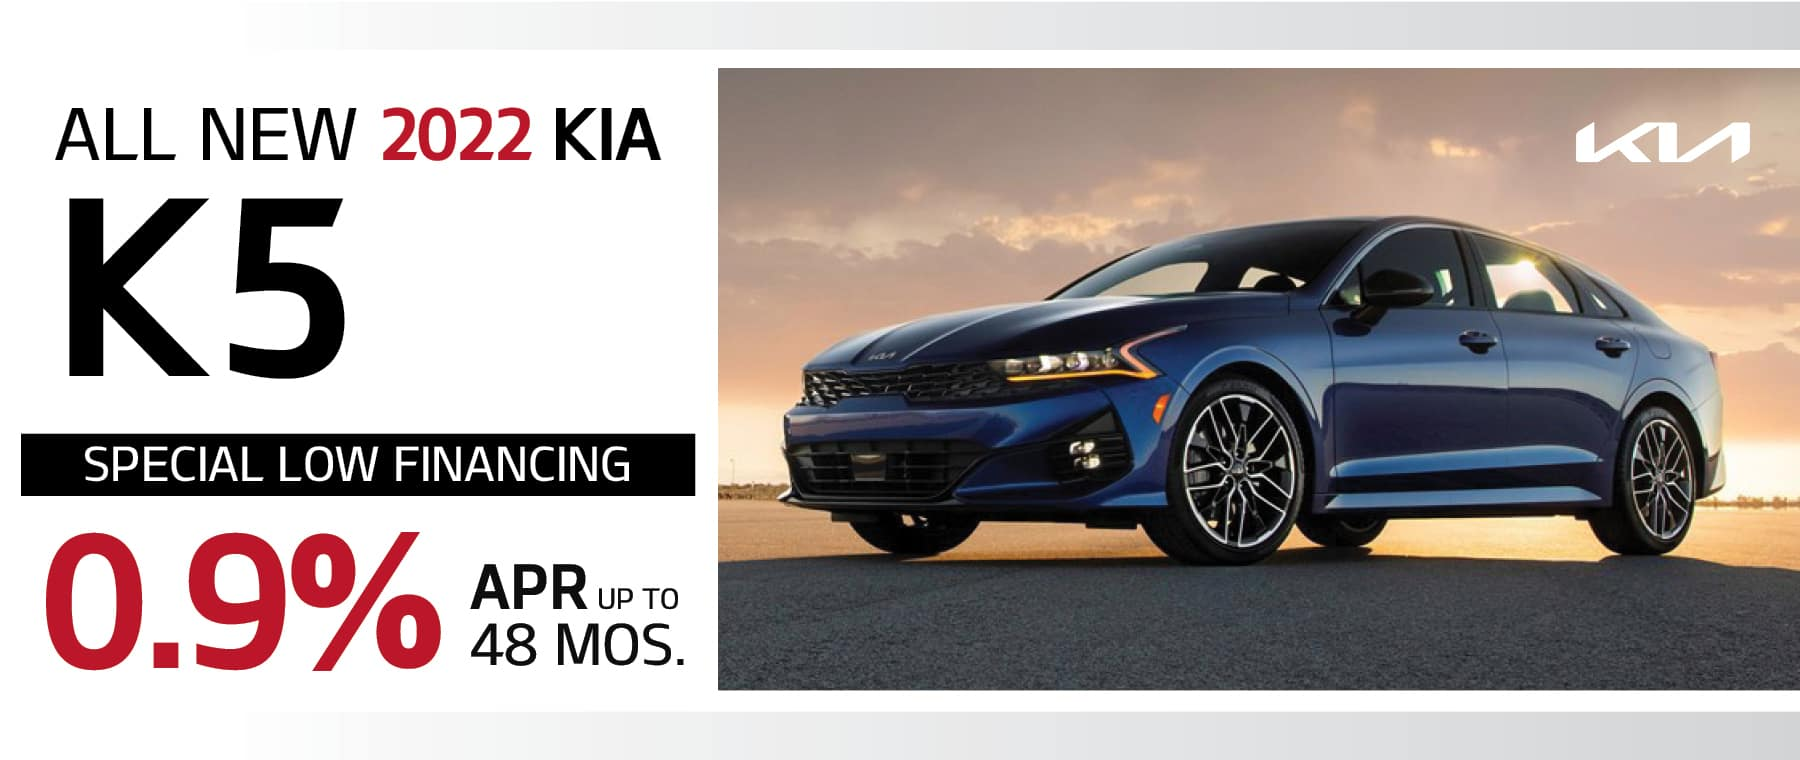 2022 Kia K% 0.9% APR for up to 48 Months